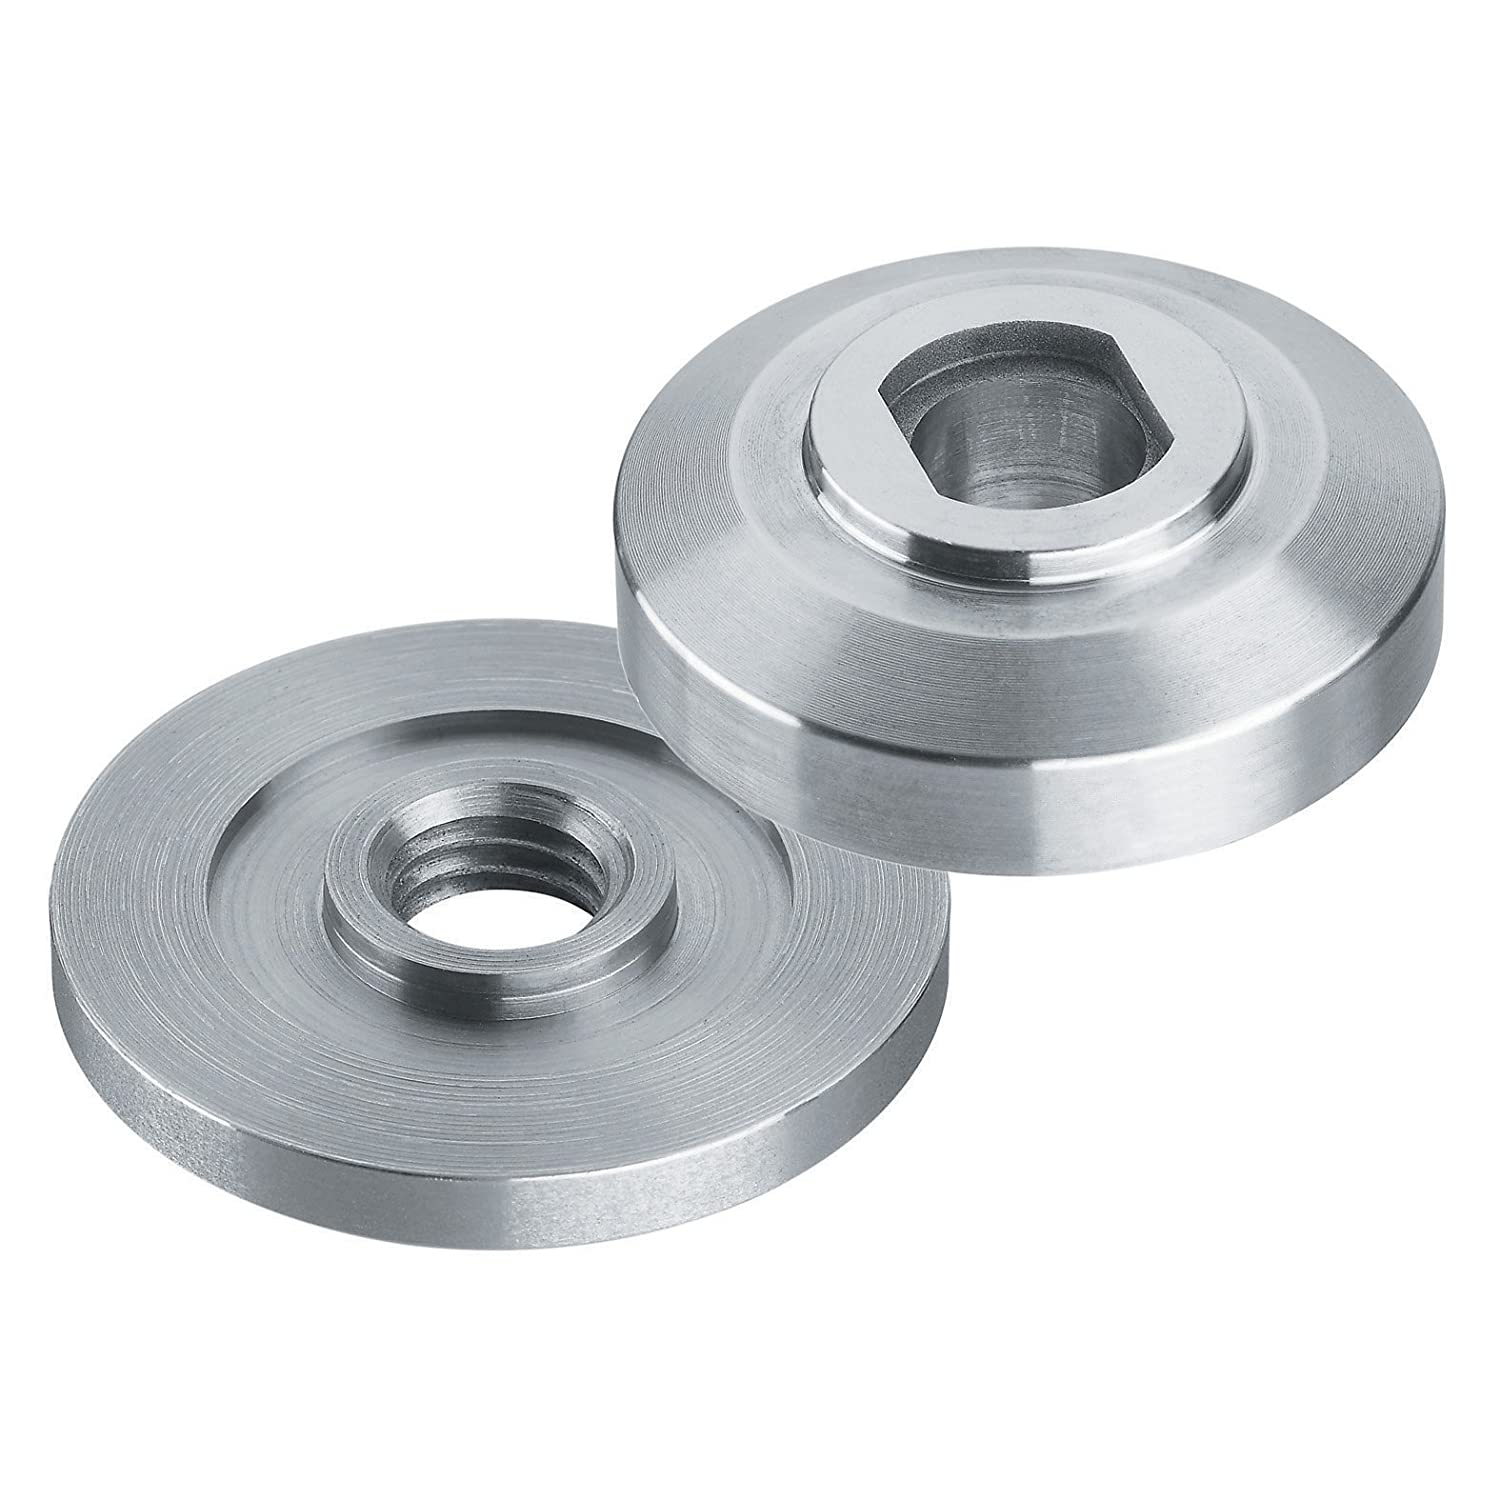 DEWALT D284932 Flange Set for Large Angle Grinder (Type 1 cutting wheels)